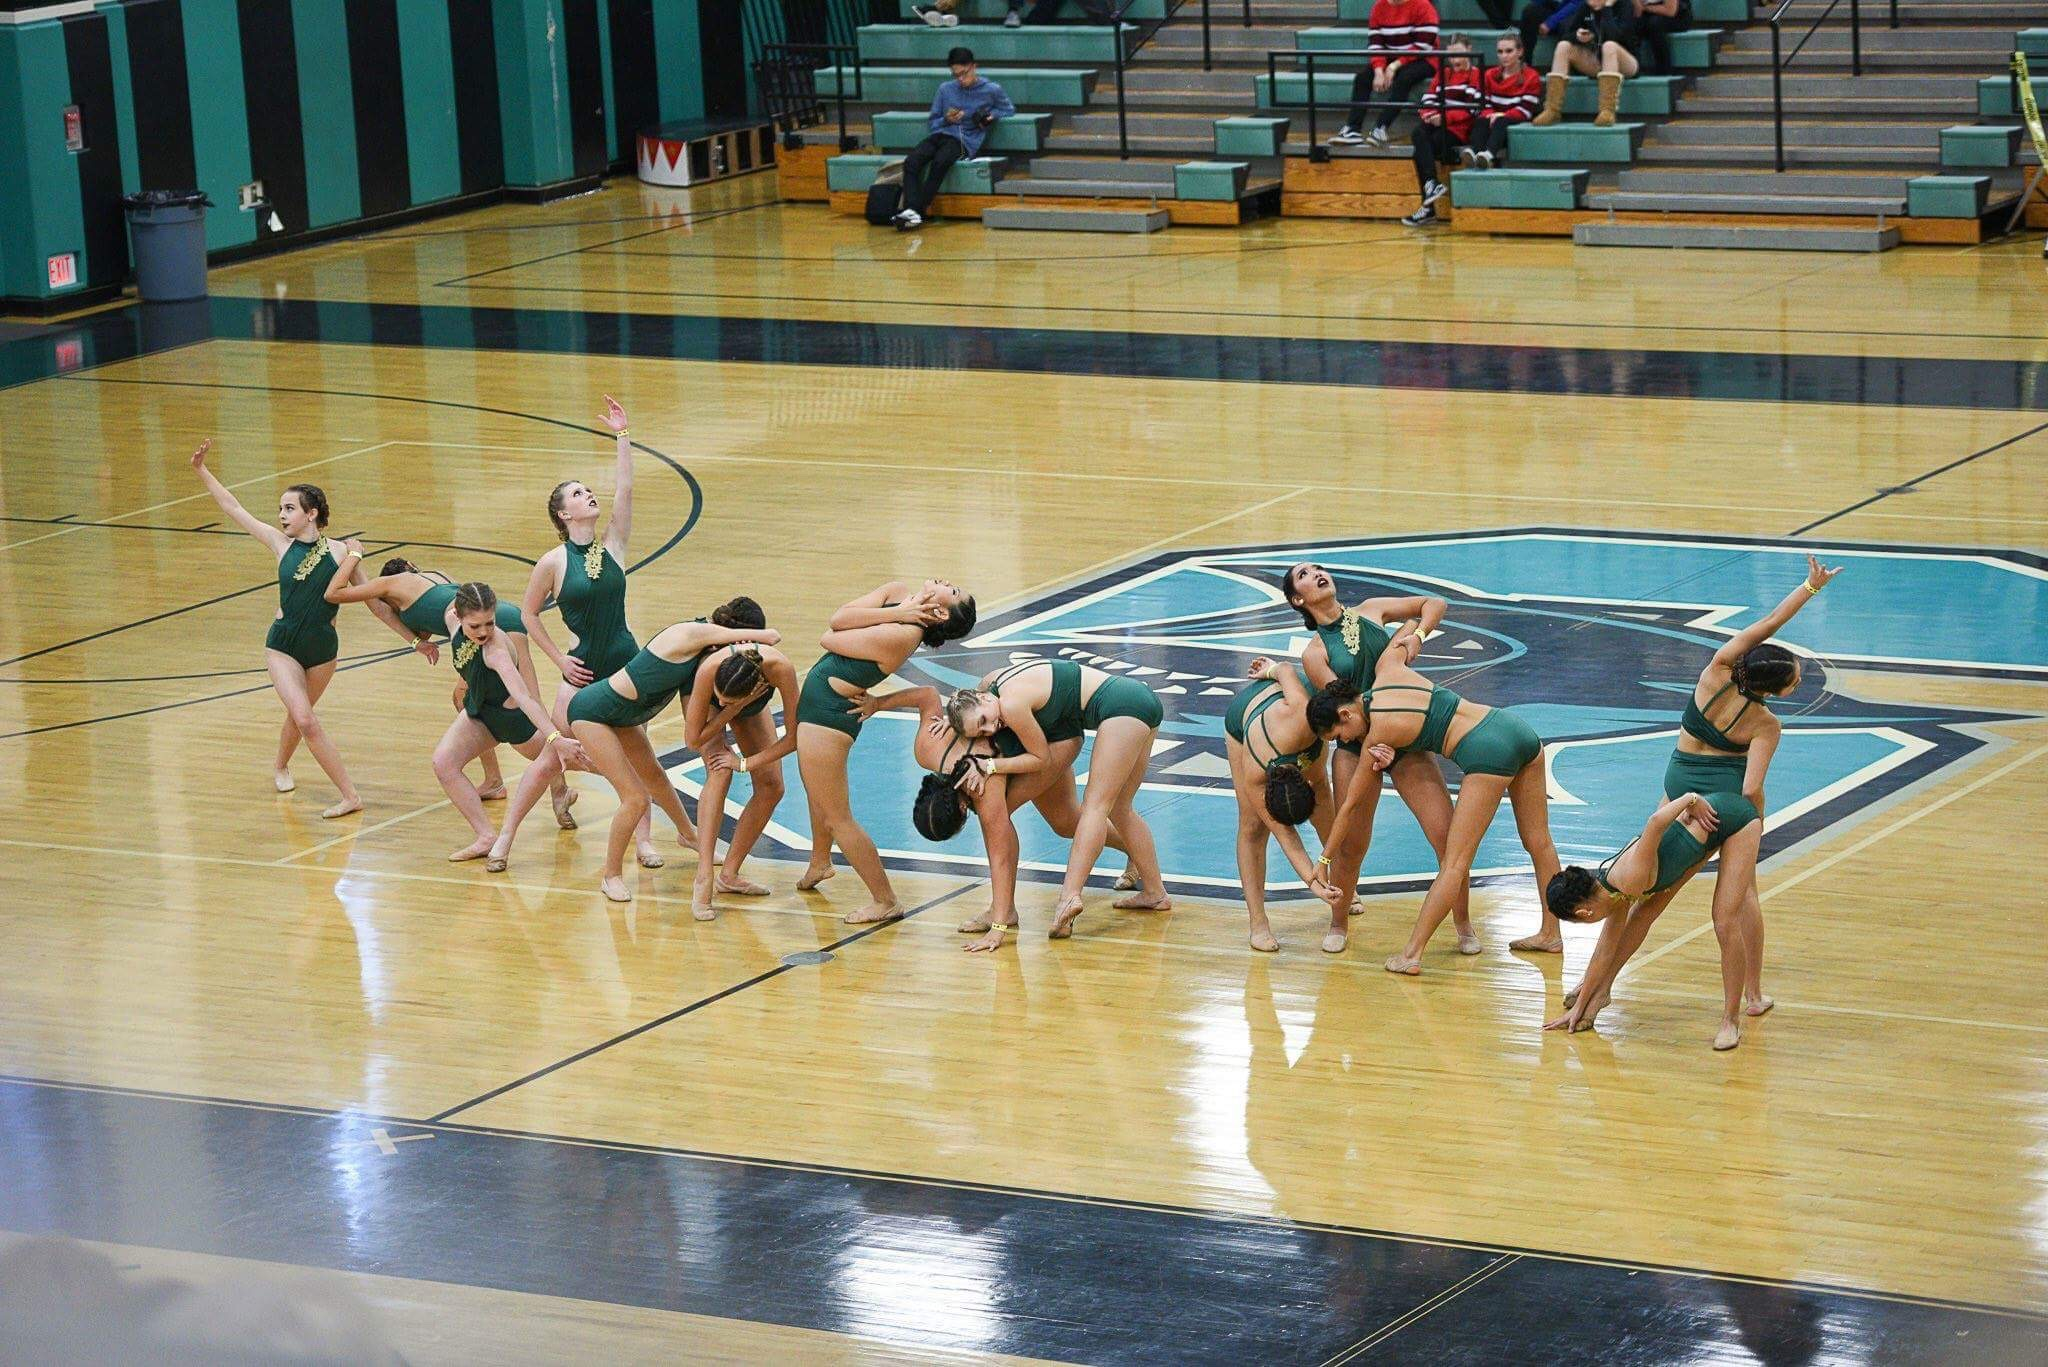 Dance Team  expresses their theme through their dance moves.